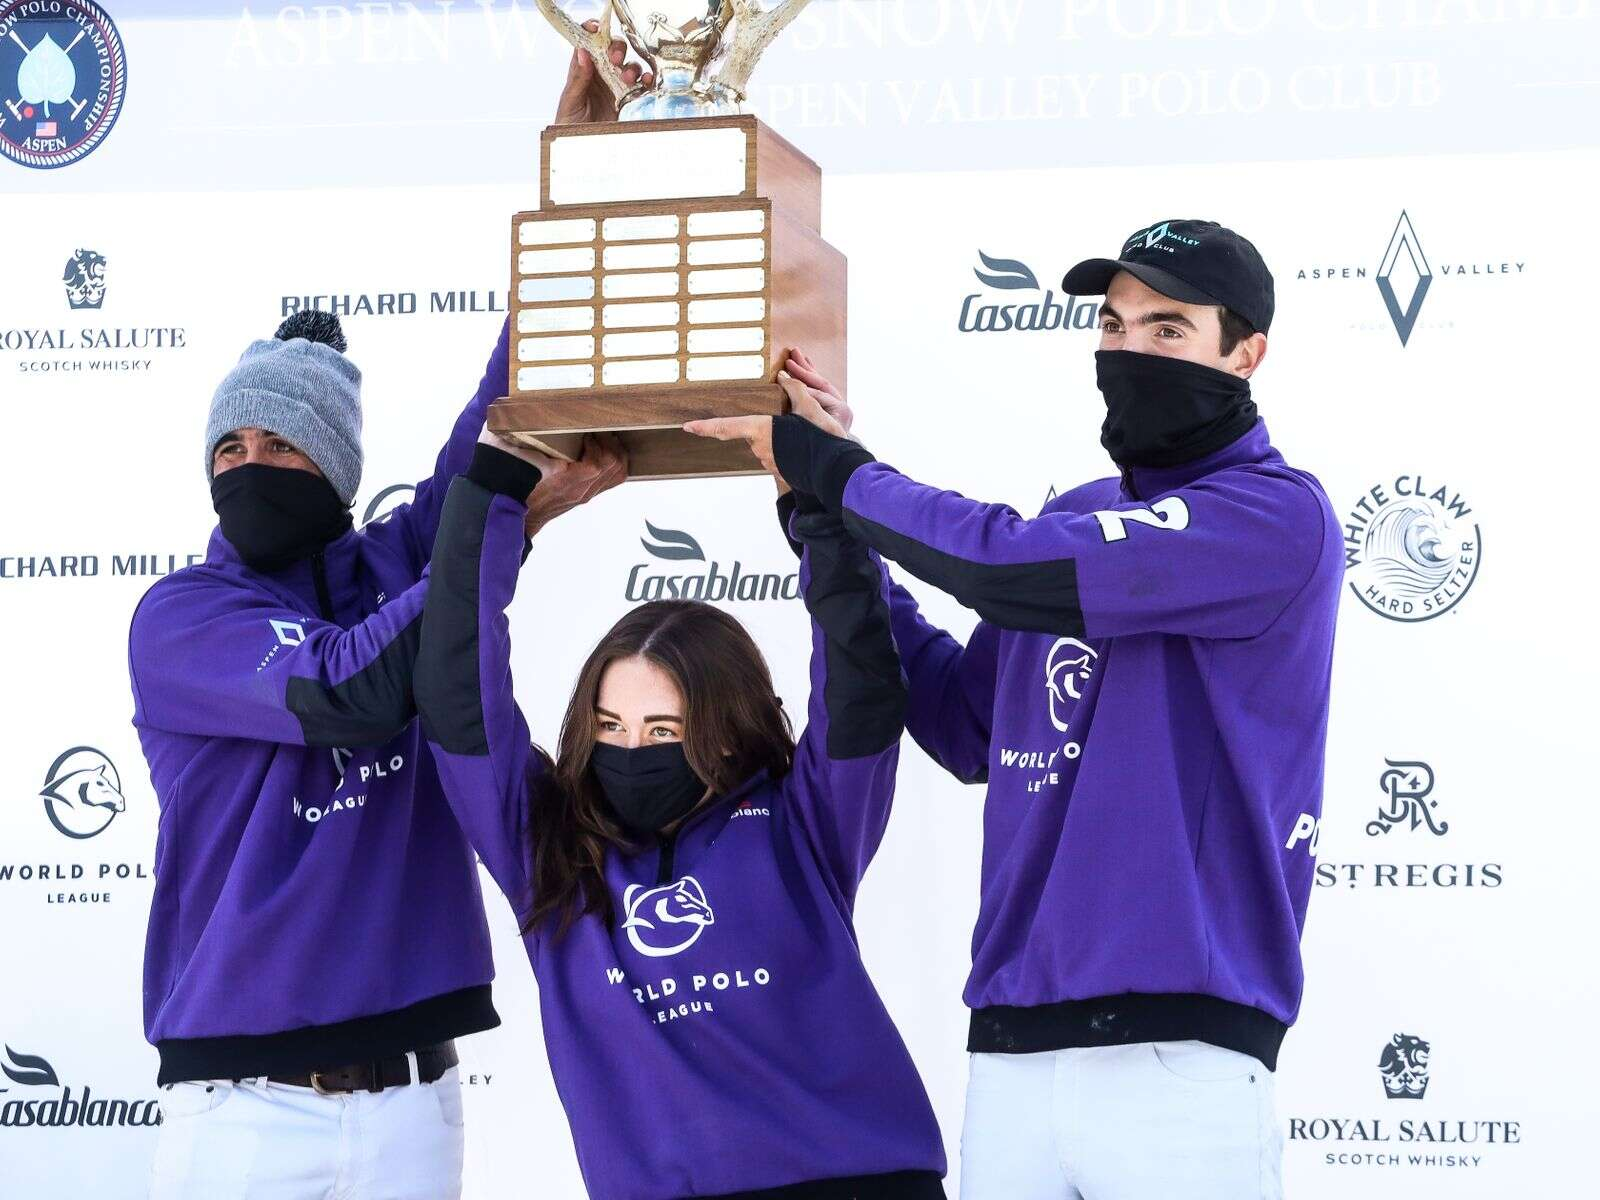 World Polo League celebrates after winning the championship of the  World Snow Polo Championship on Sunday, Dec. 20, 2020, at Rio Grande Park in Aspen. Photo by Austin Colbert/The Aspen Times.